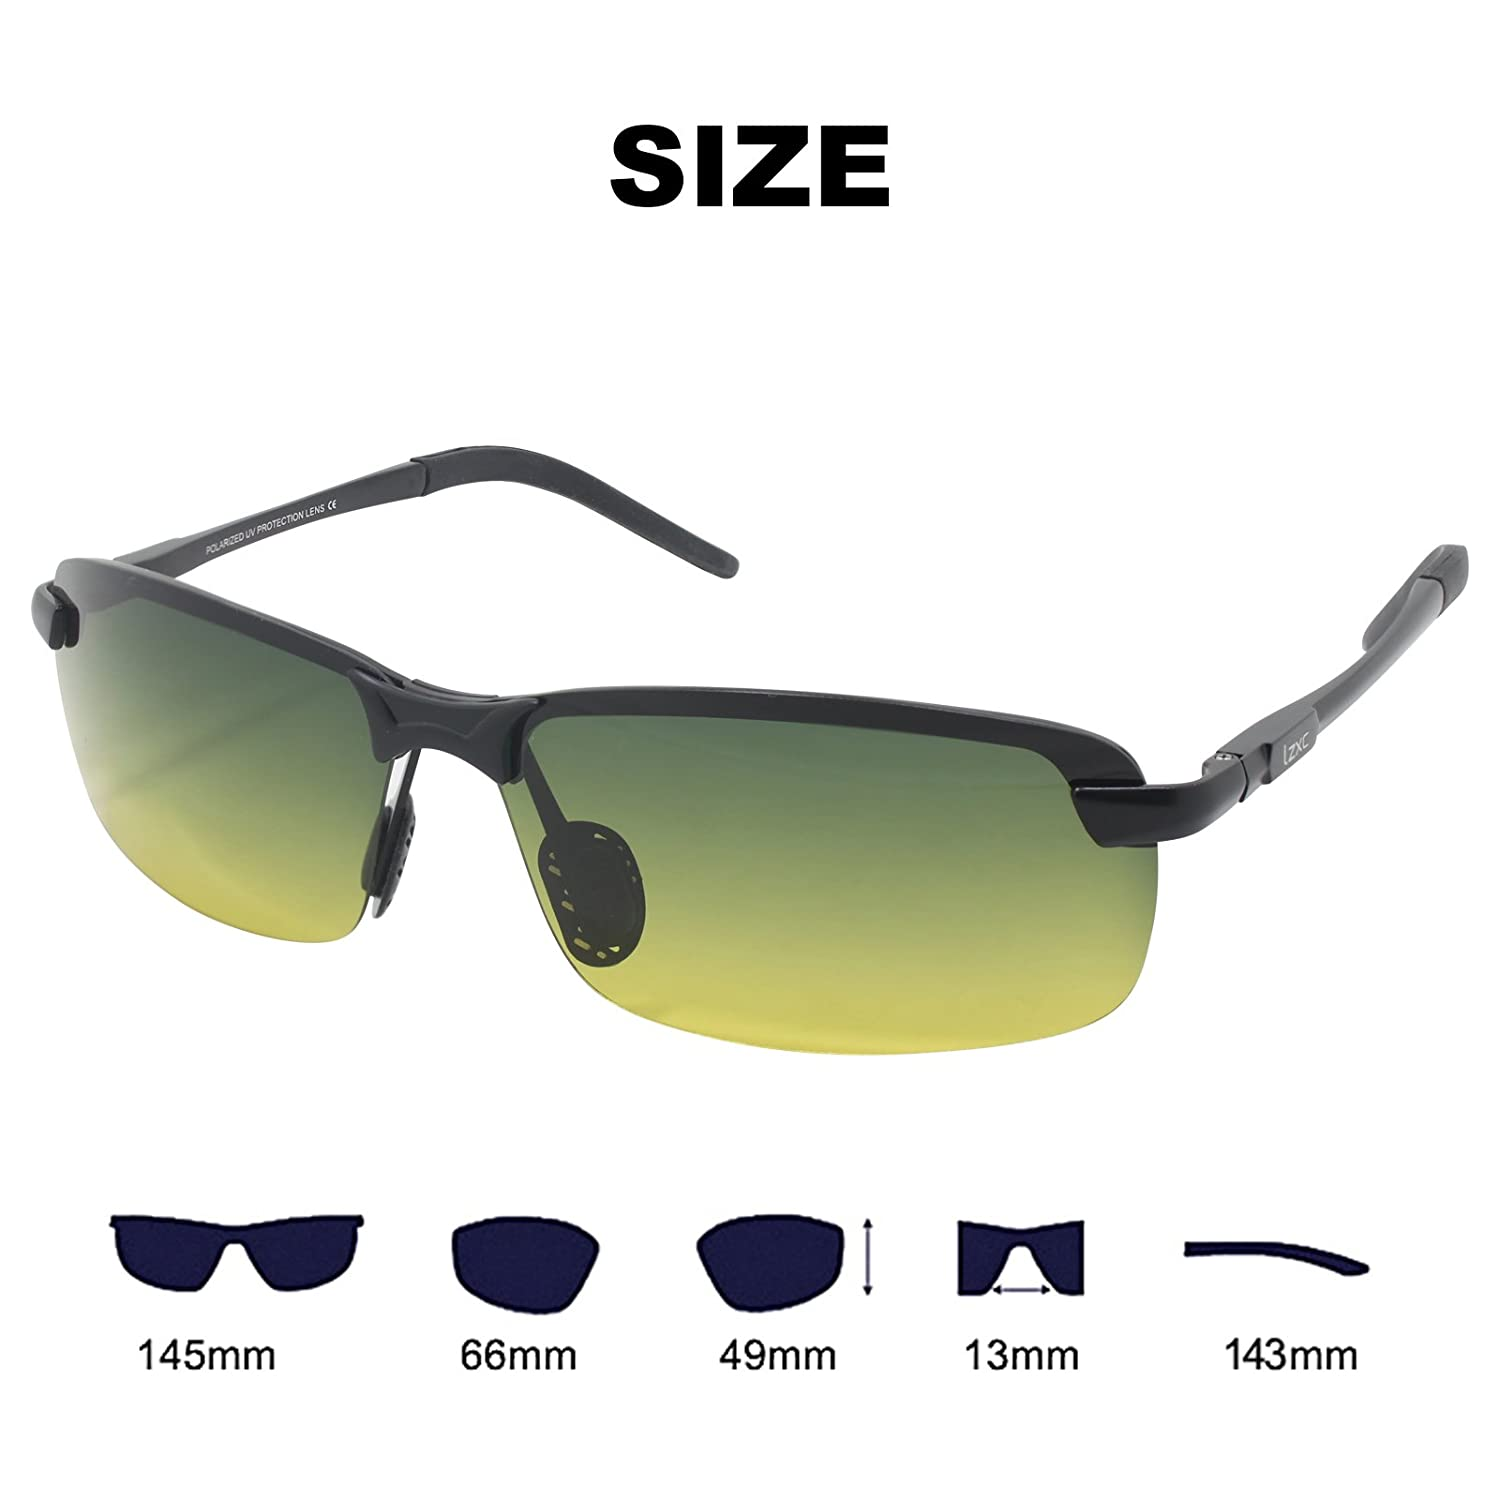 1c1bb43ea299 LZXC Men s Driving Polarized Sunglasses with Adjustable AL-MG Black Frame  Day and Night Vision Lens  Amazon.co.uk  Clothing